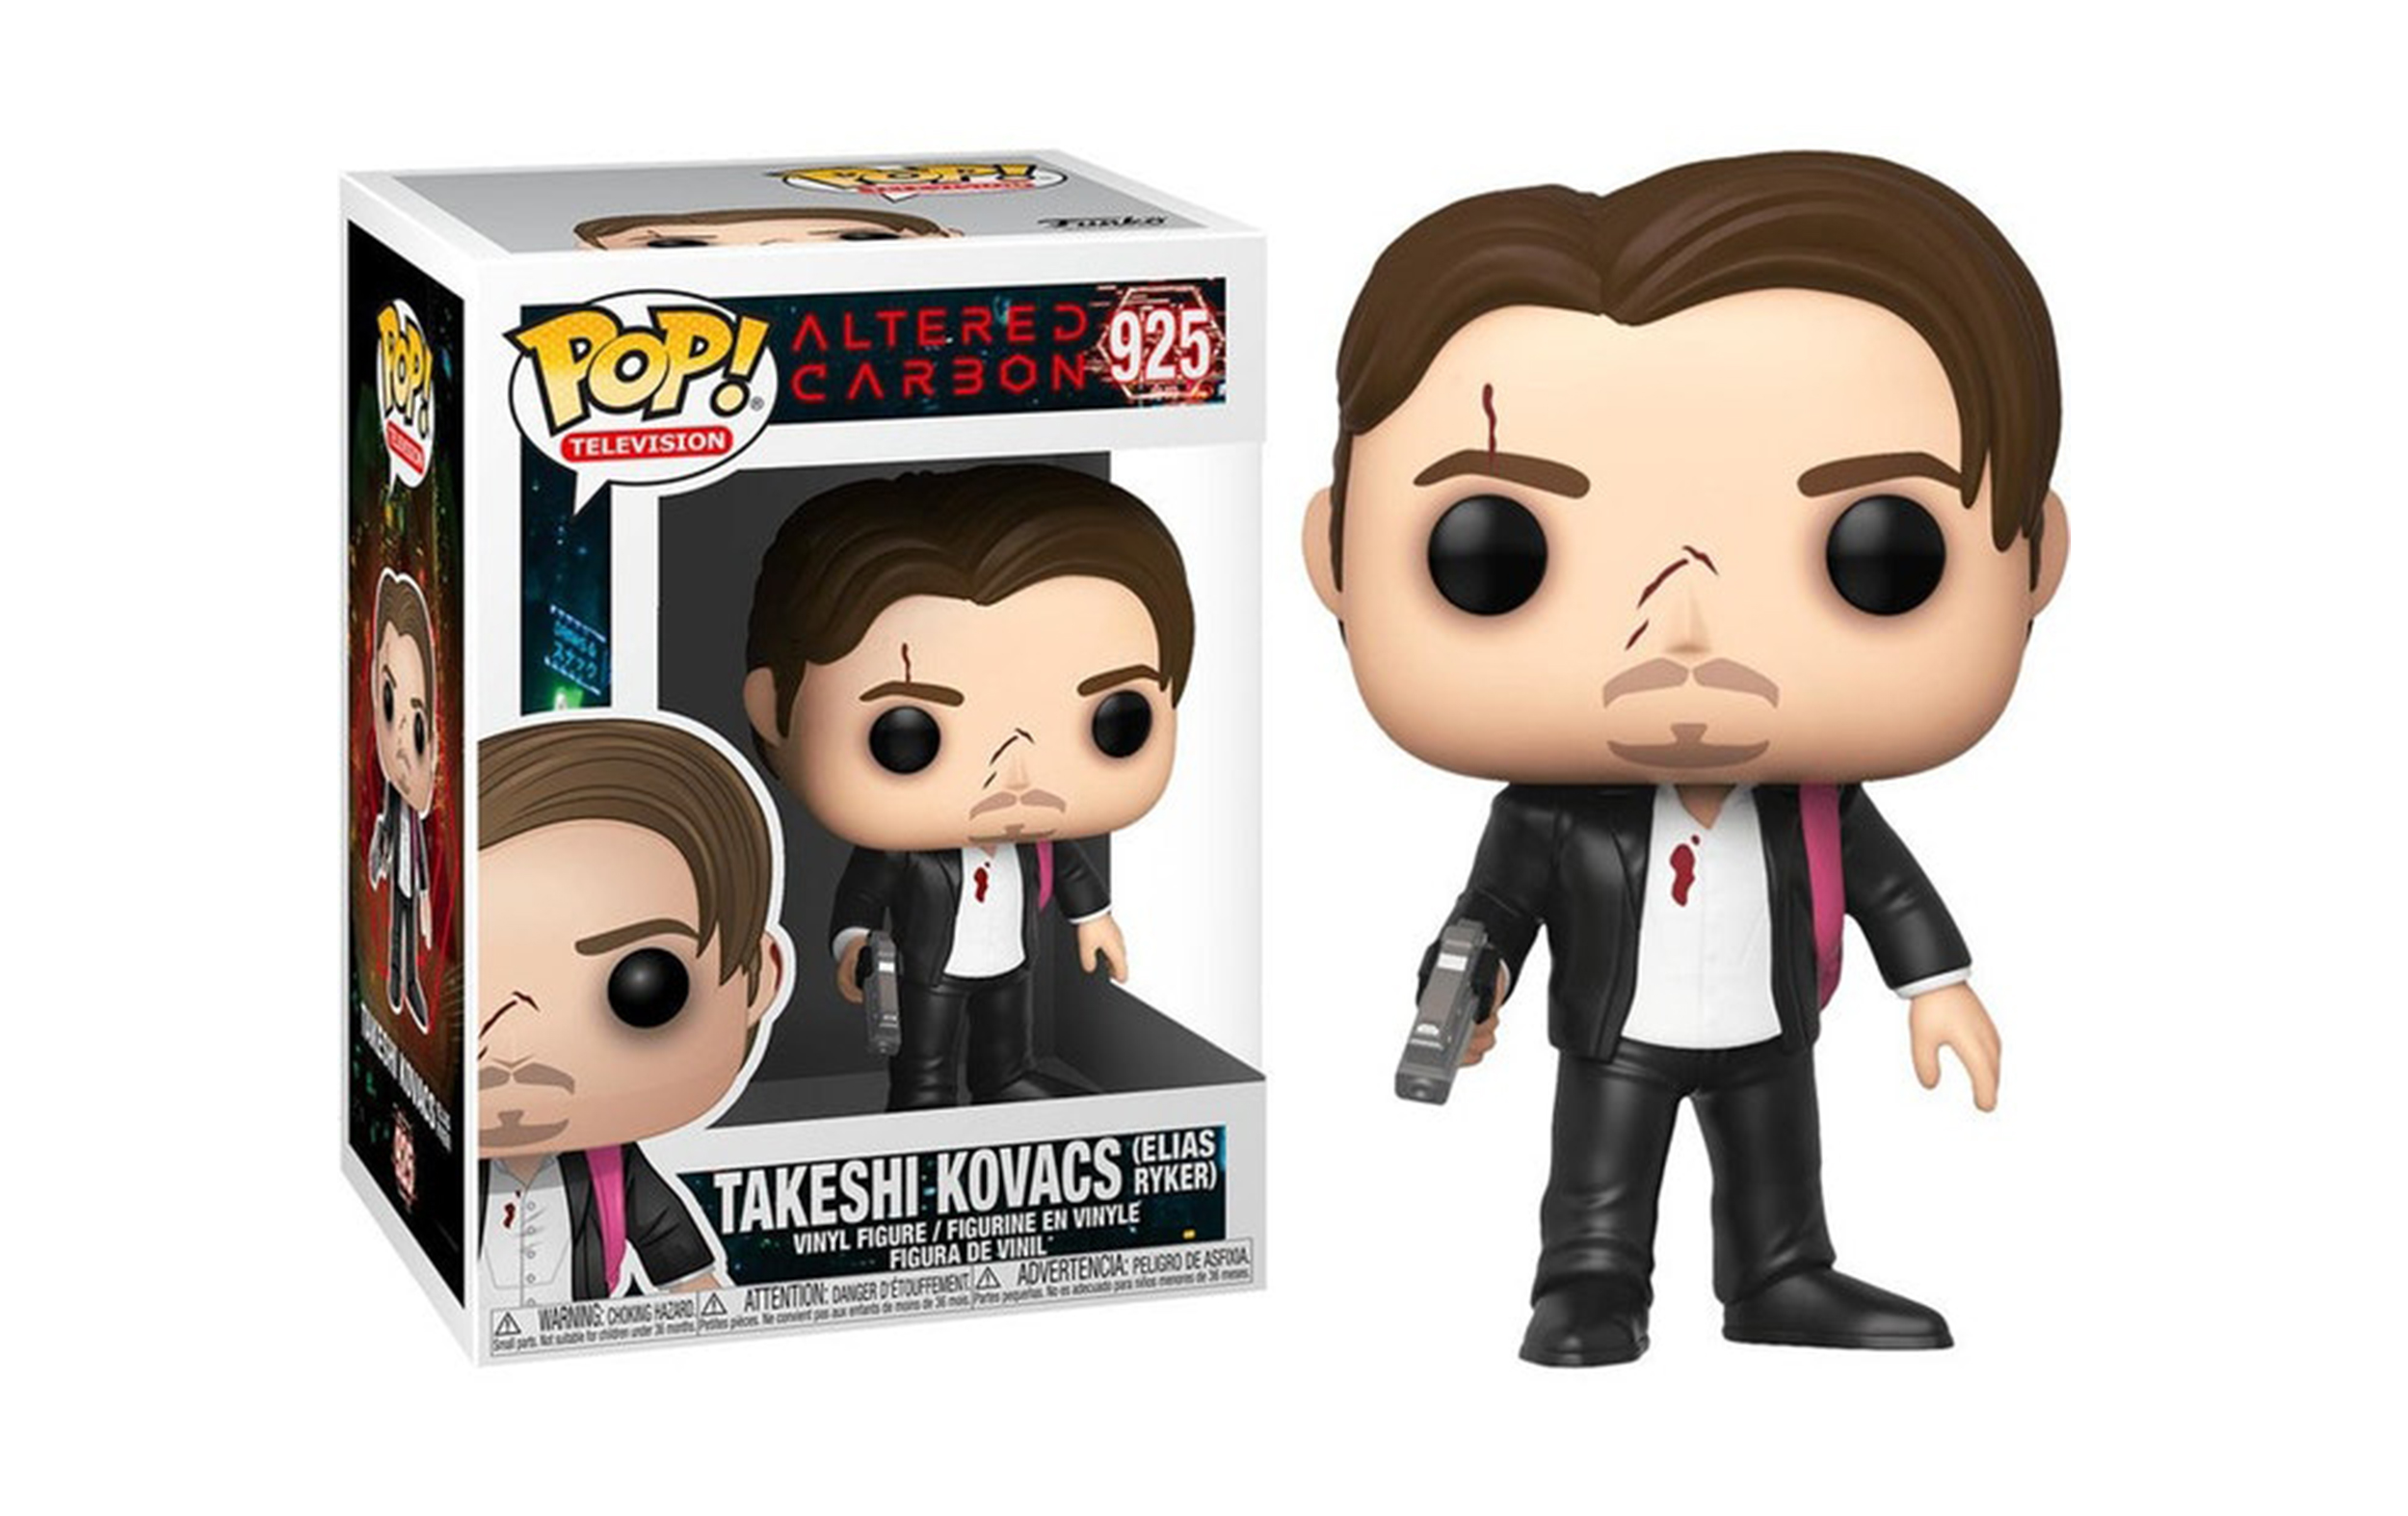 Altered Carbon Takeshi Kovacs Elias Ryker 925 Funko POP Vinyl Figure